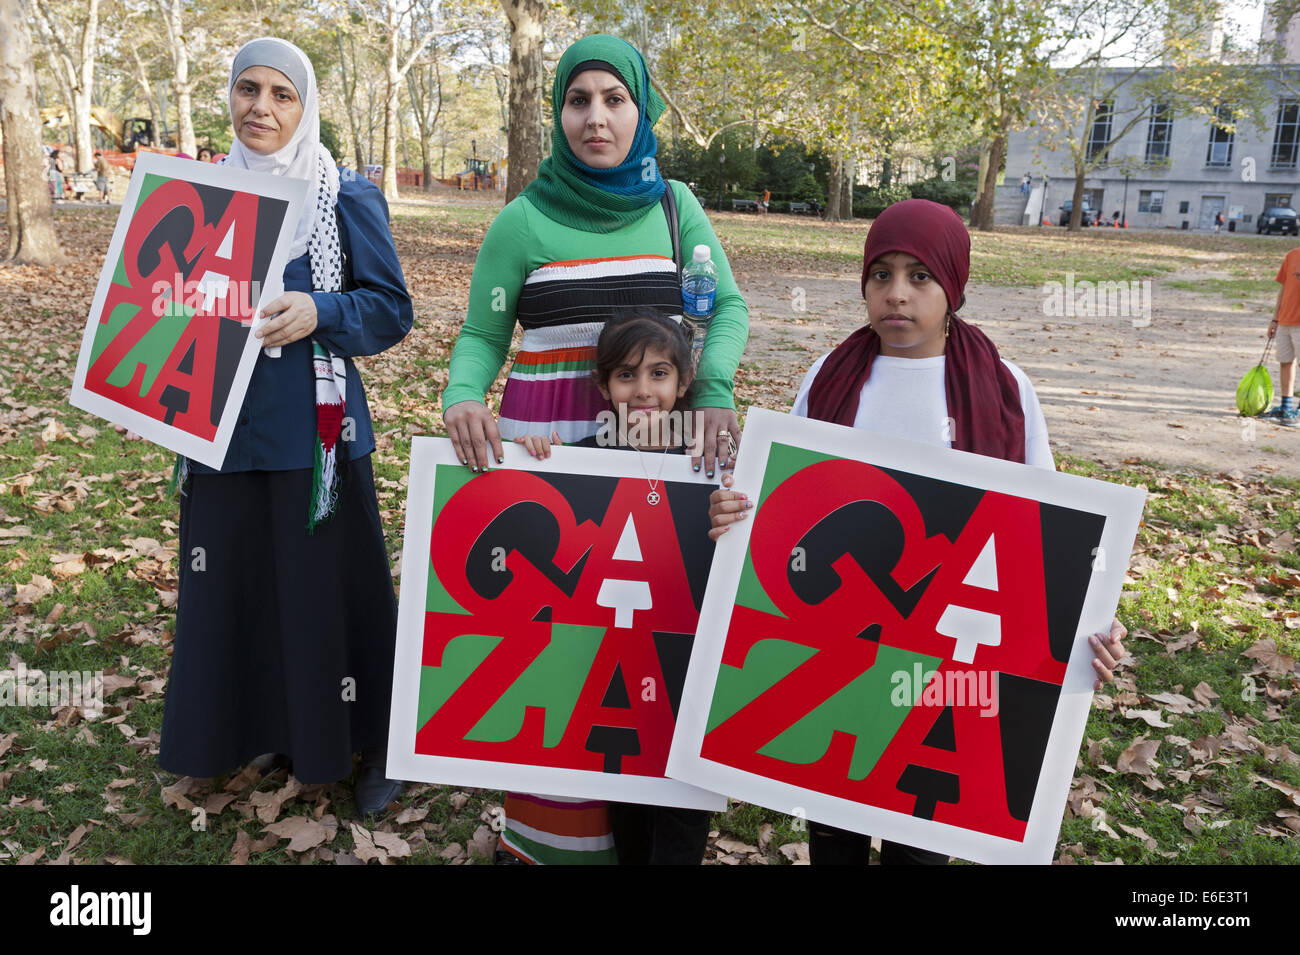 Rally for Palestine at Cadman Plaza Park in Brooklyn in New York, Aug.20, 2014. - Stock Image